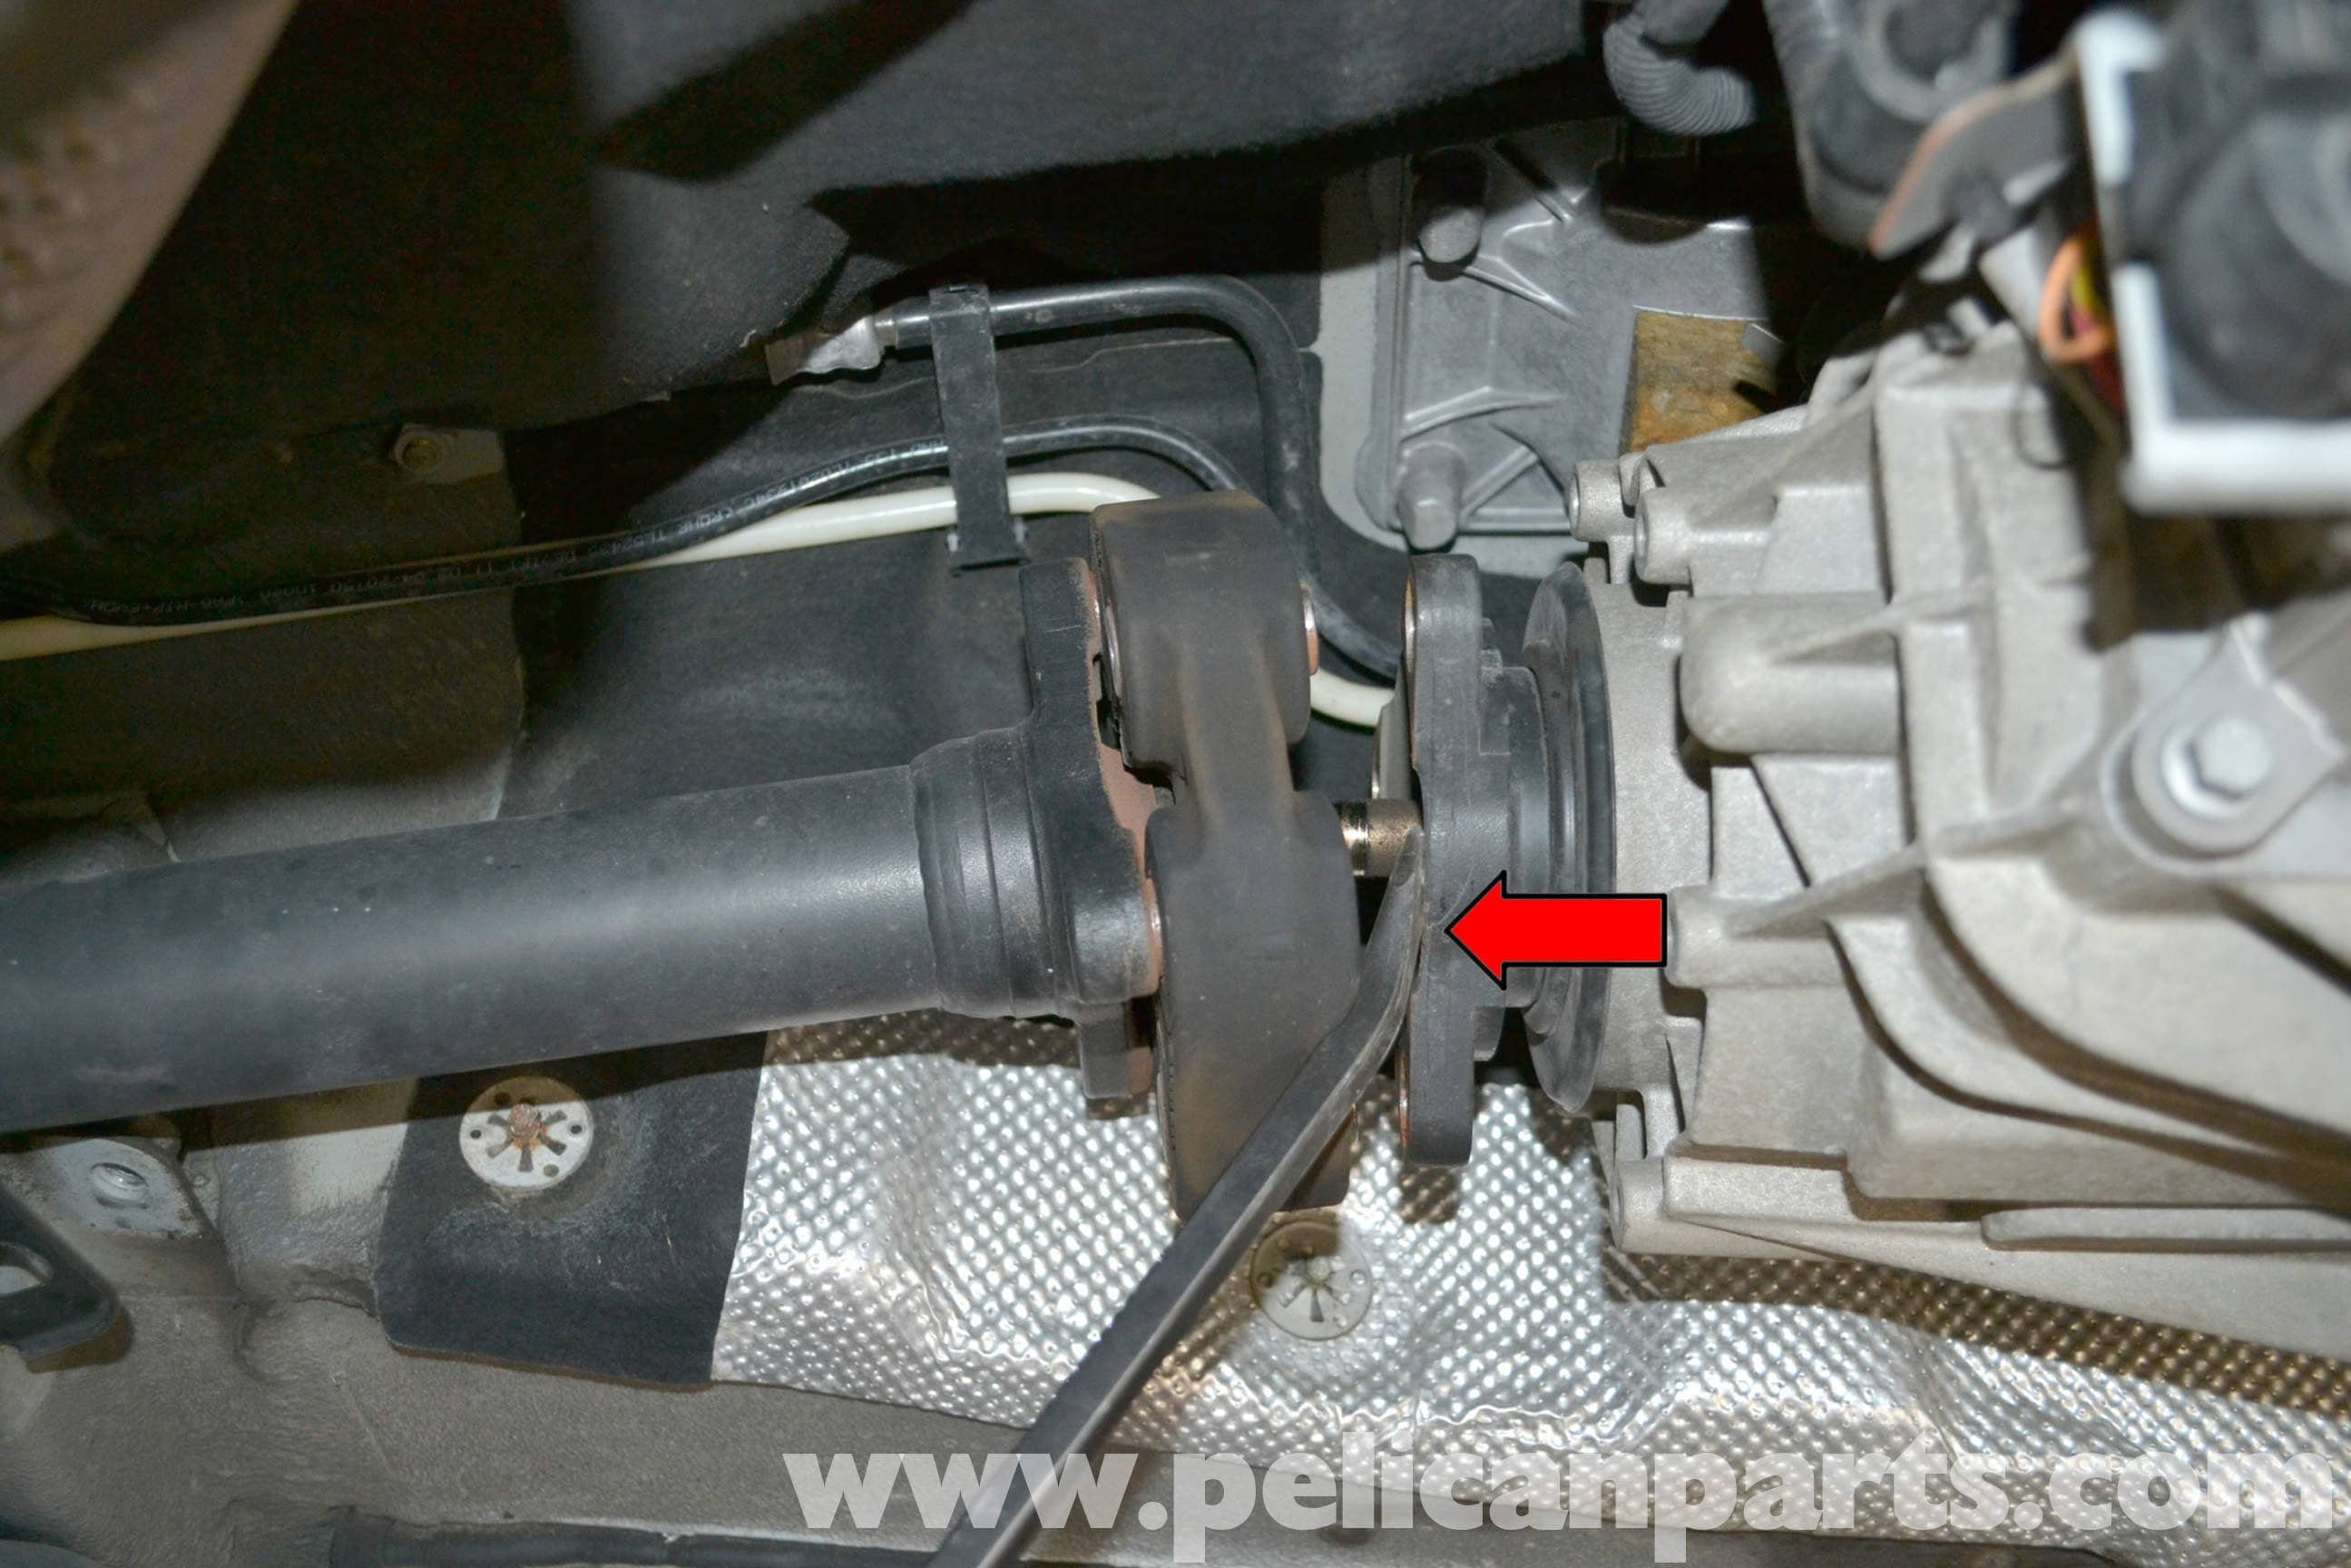 Pelican Parts Technical Article - Volkswagen Touareg - Prop